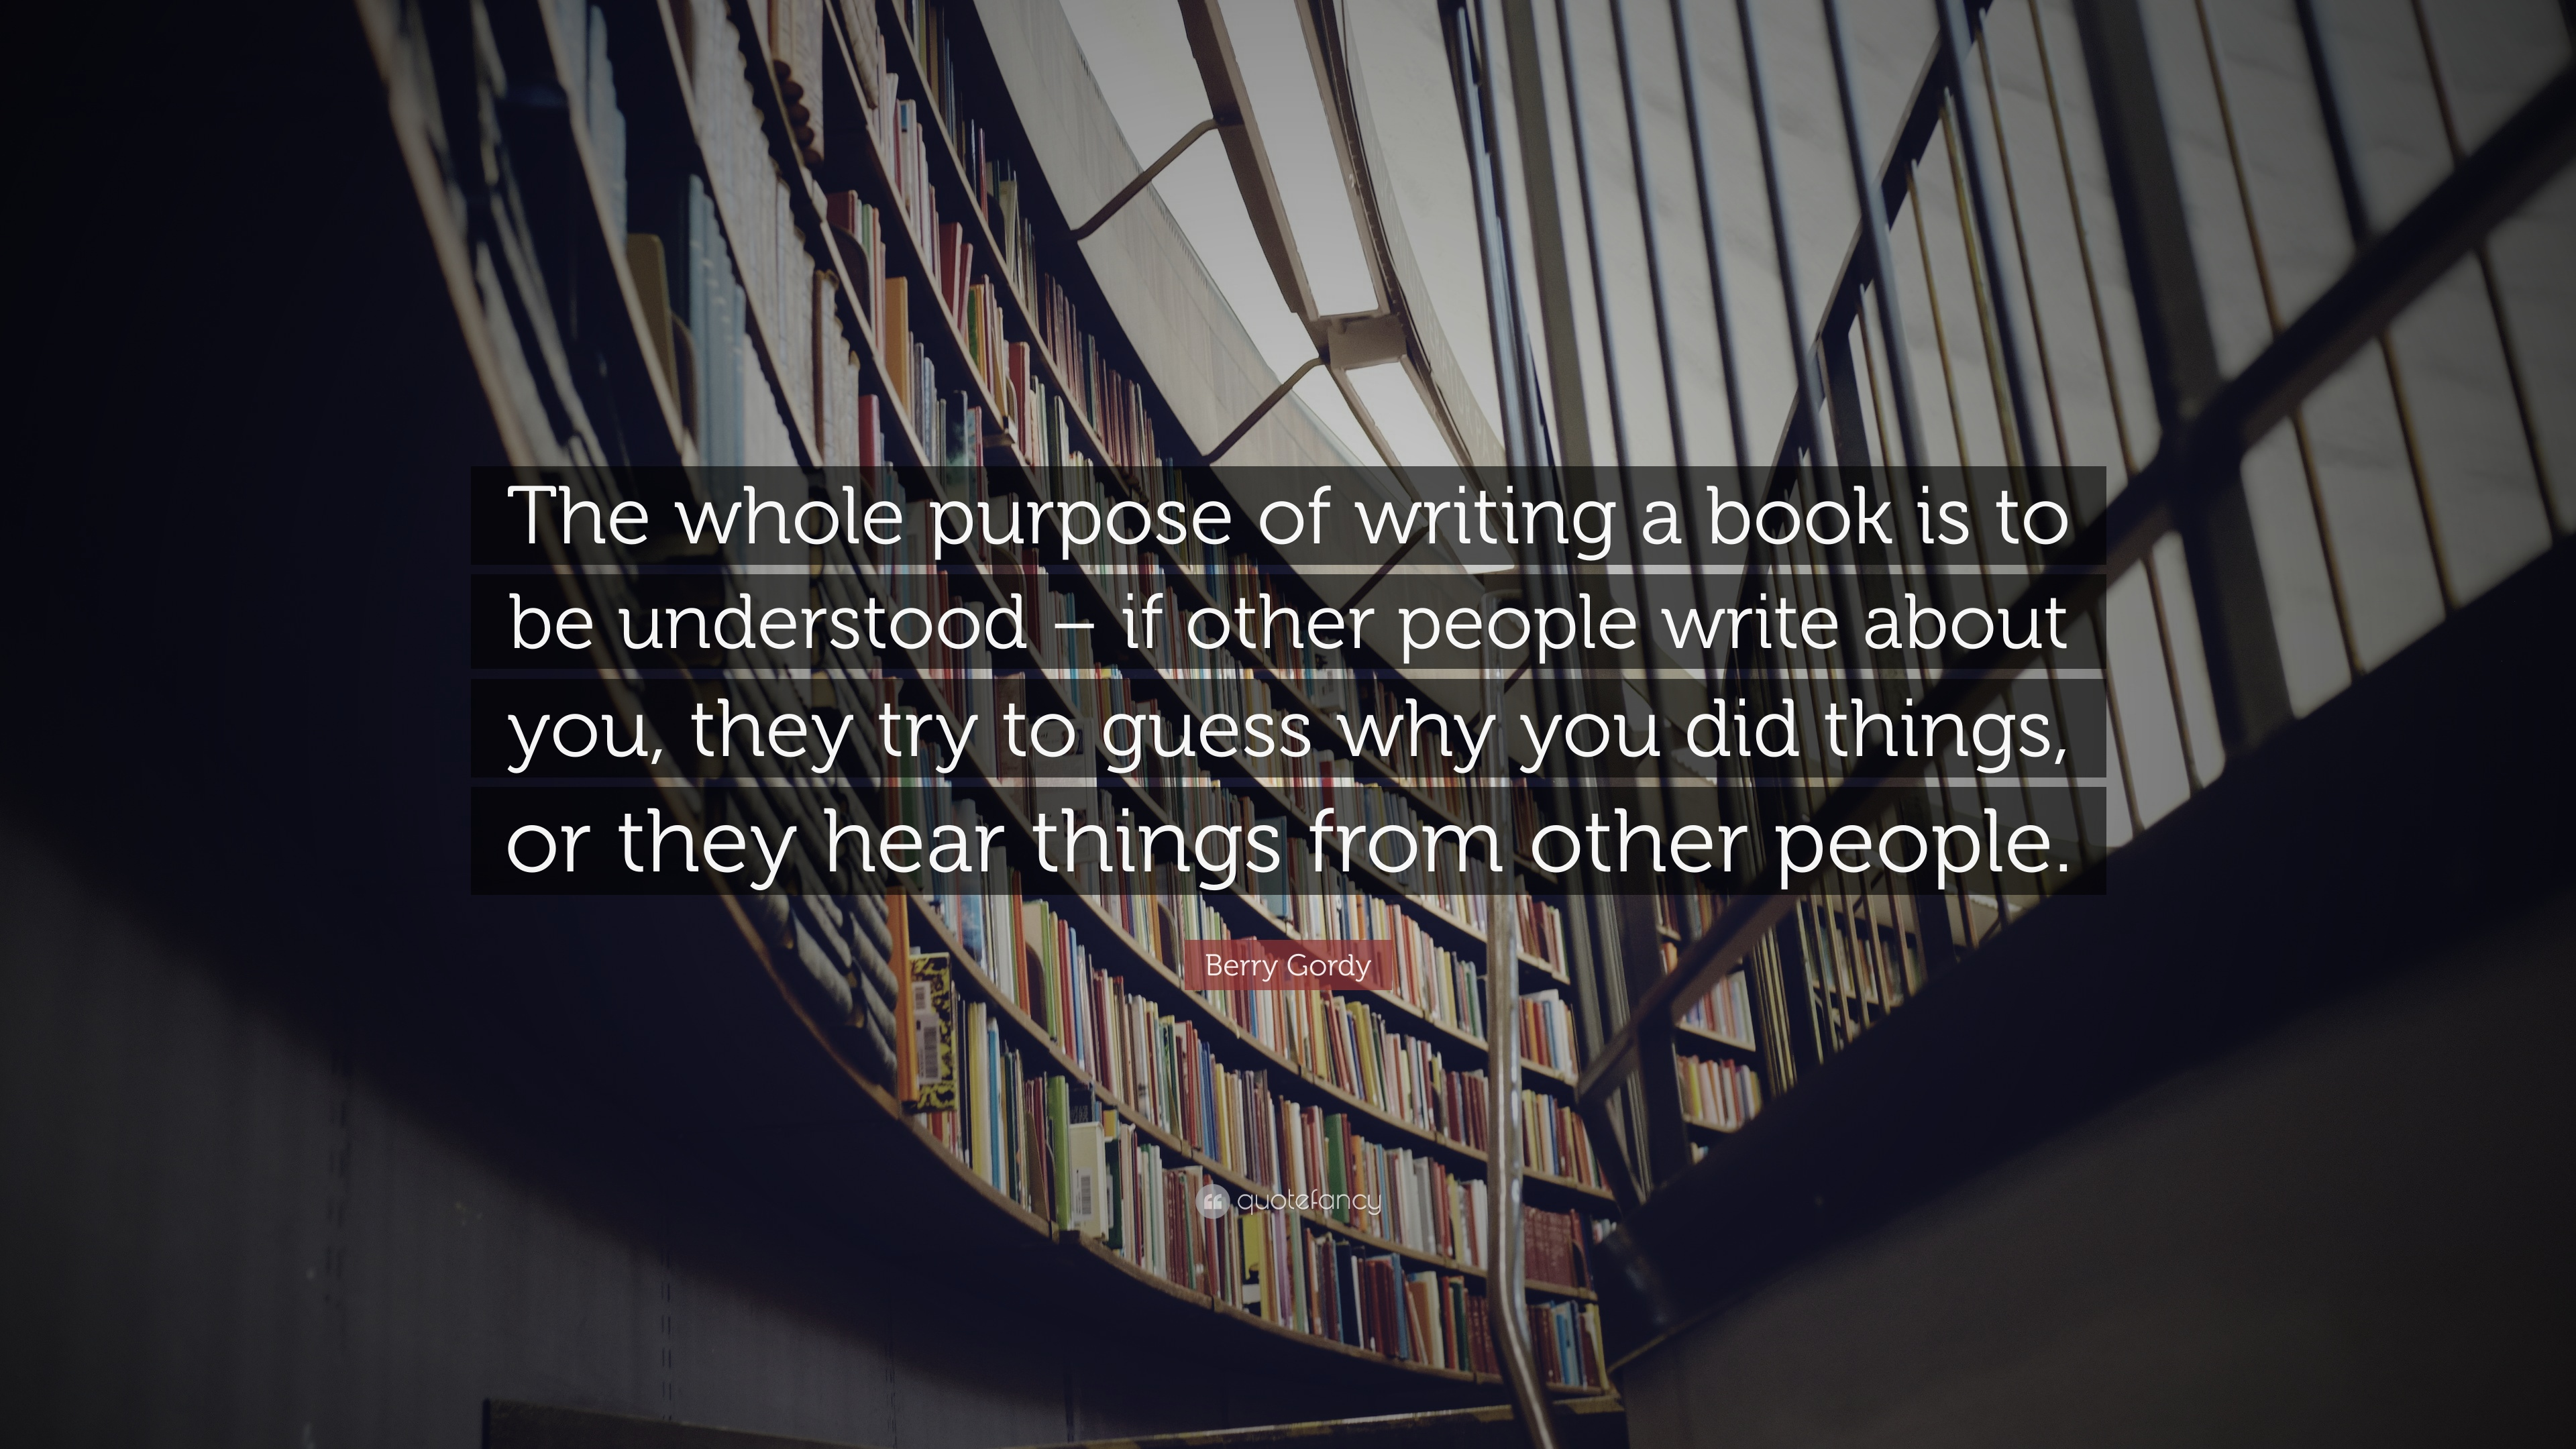 What are some purposes of writing a book ?